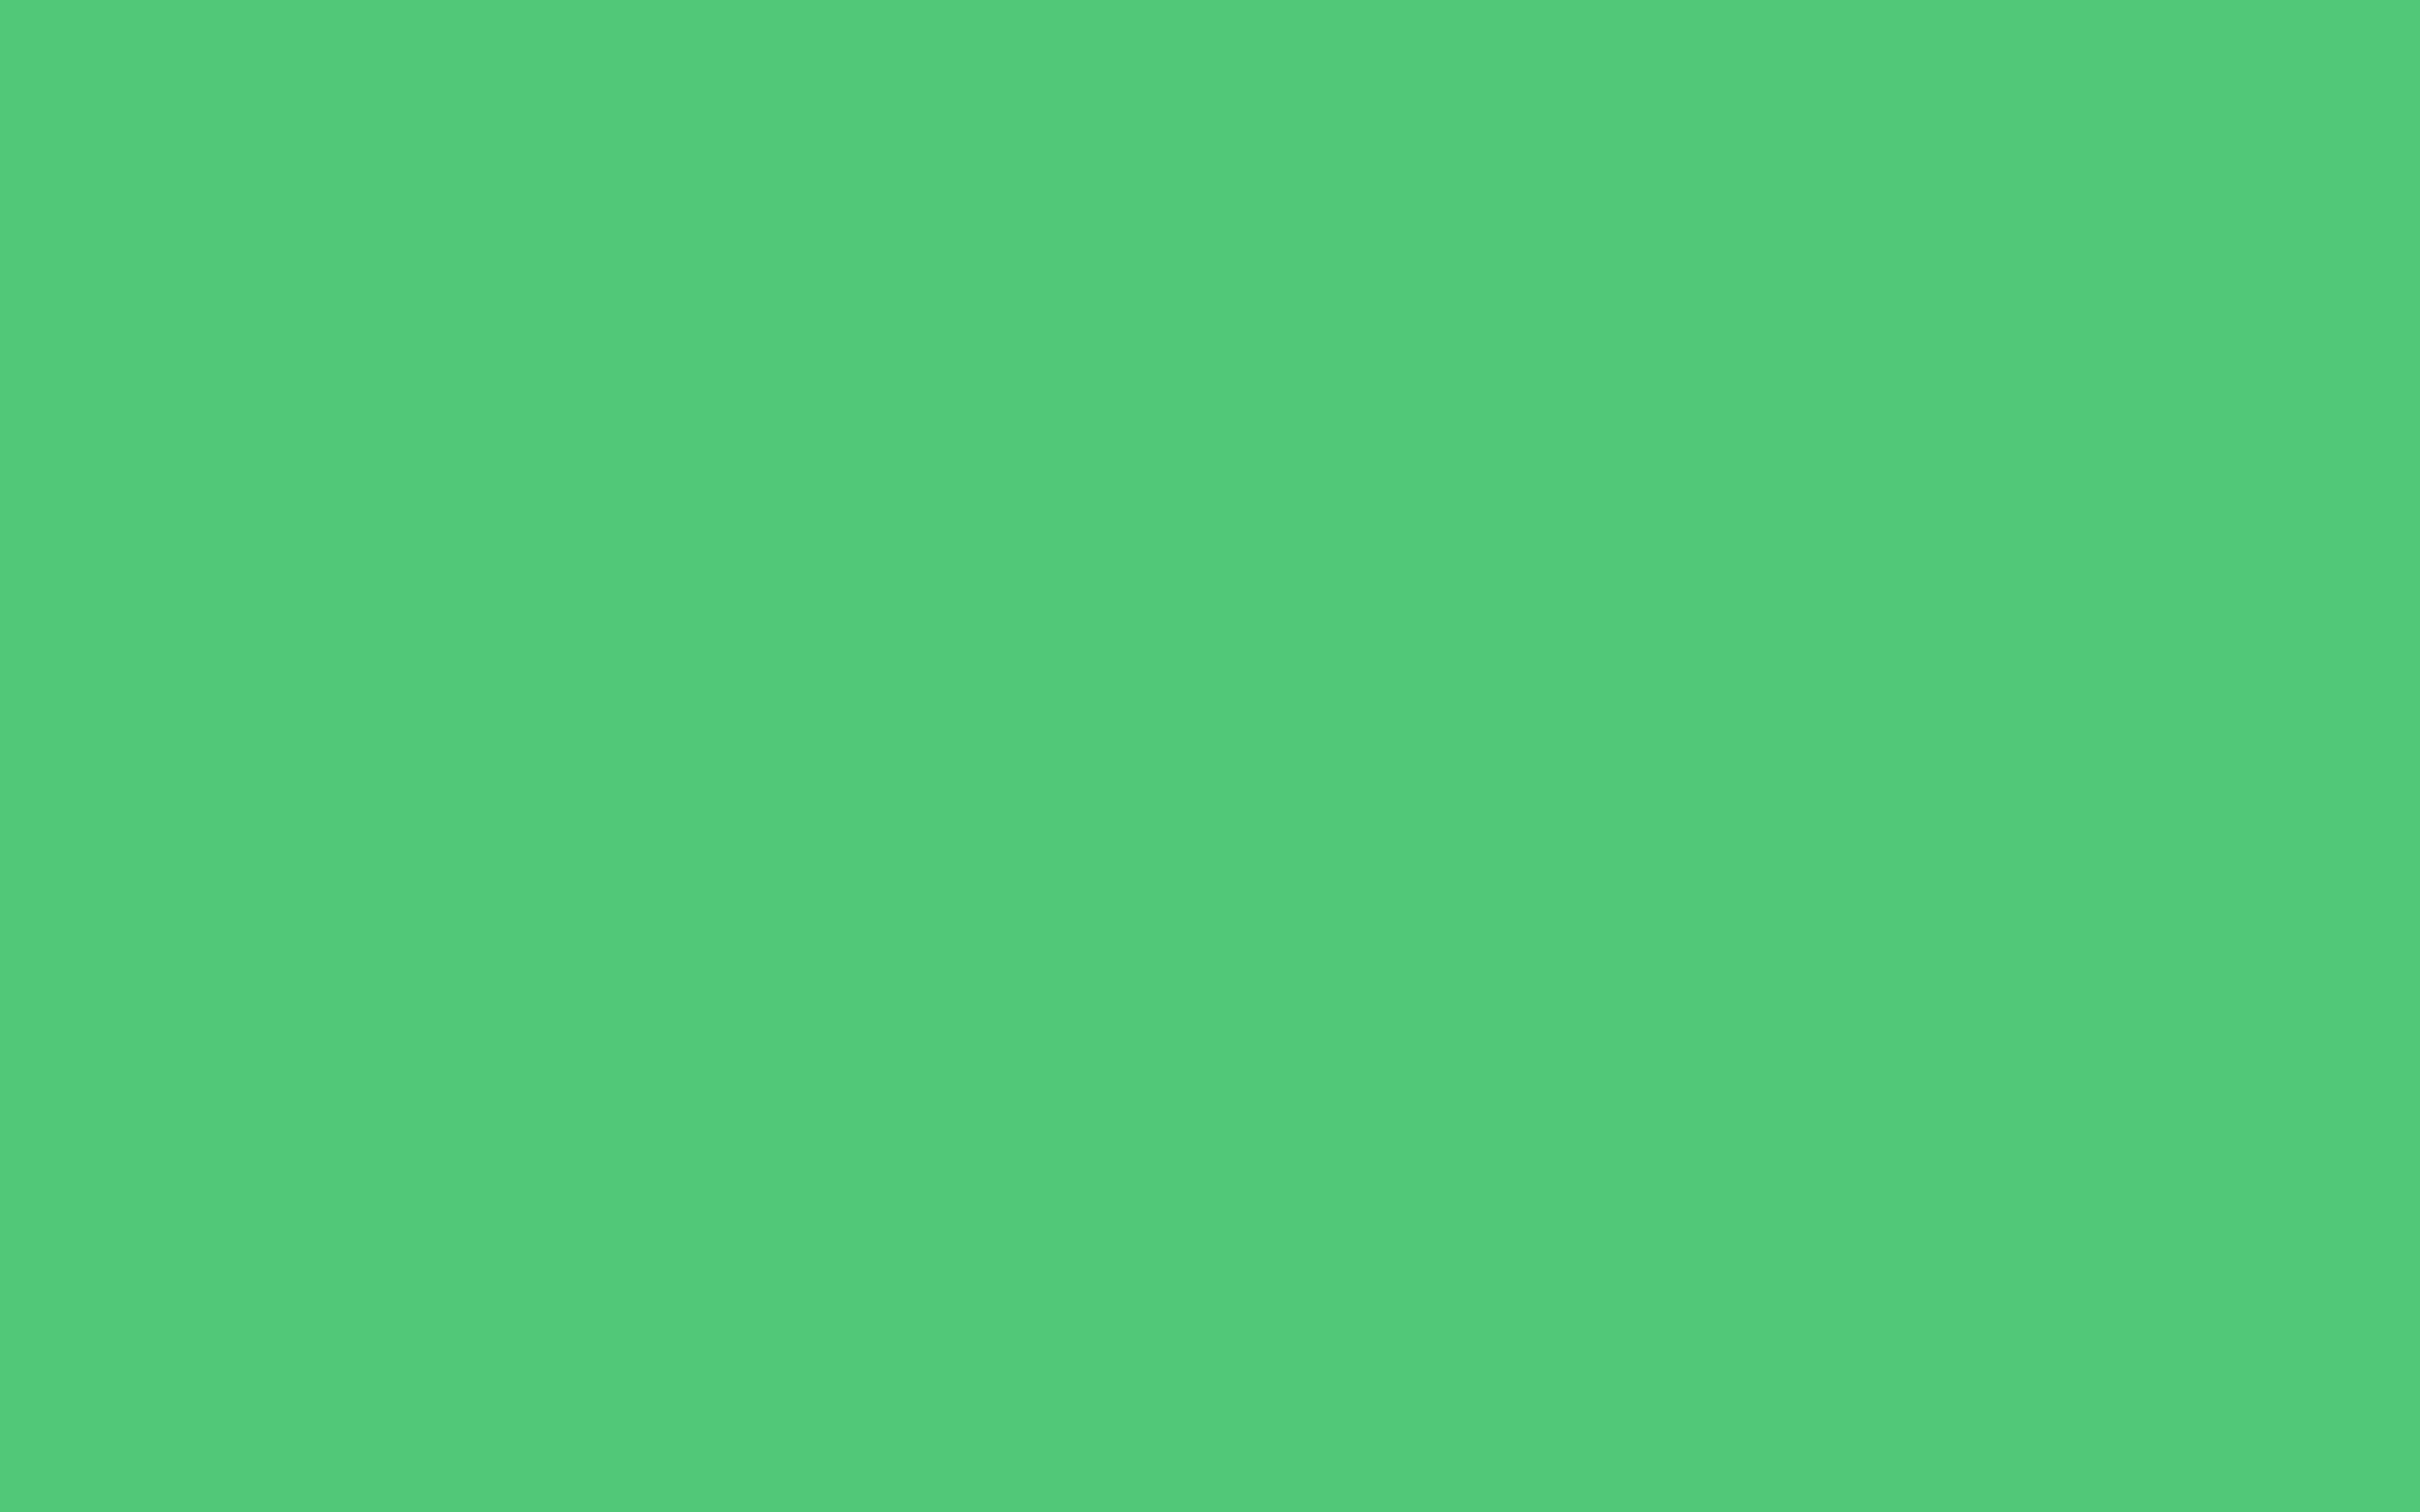 2560x1600 Emerald Solid Color Background